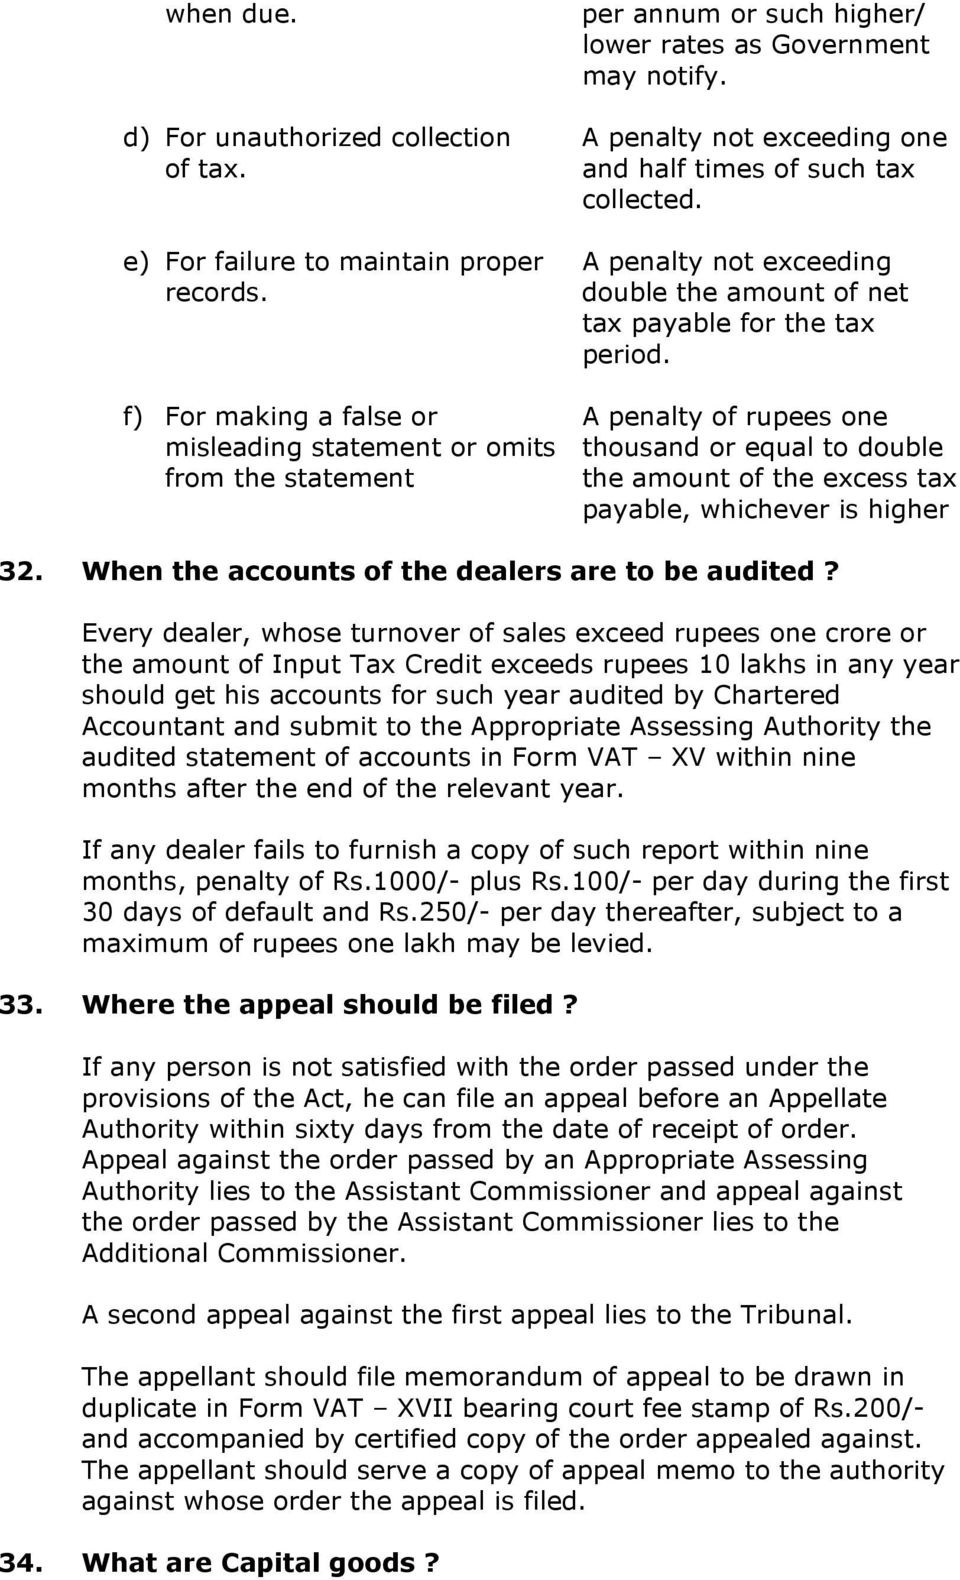 f) For making a false or A penalty of rupees one misleading statement or omits thousand or equal to double from the statement the amount of the excess tax payable, whichever is higher 32.